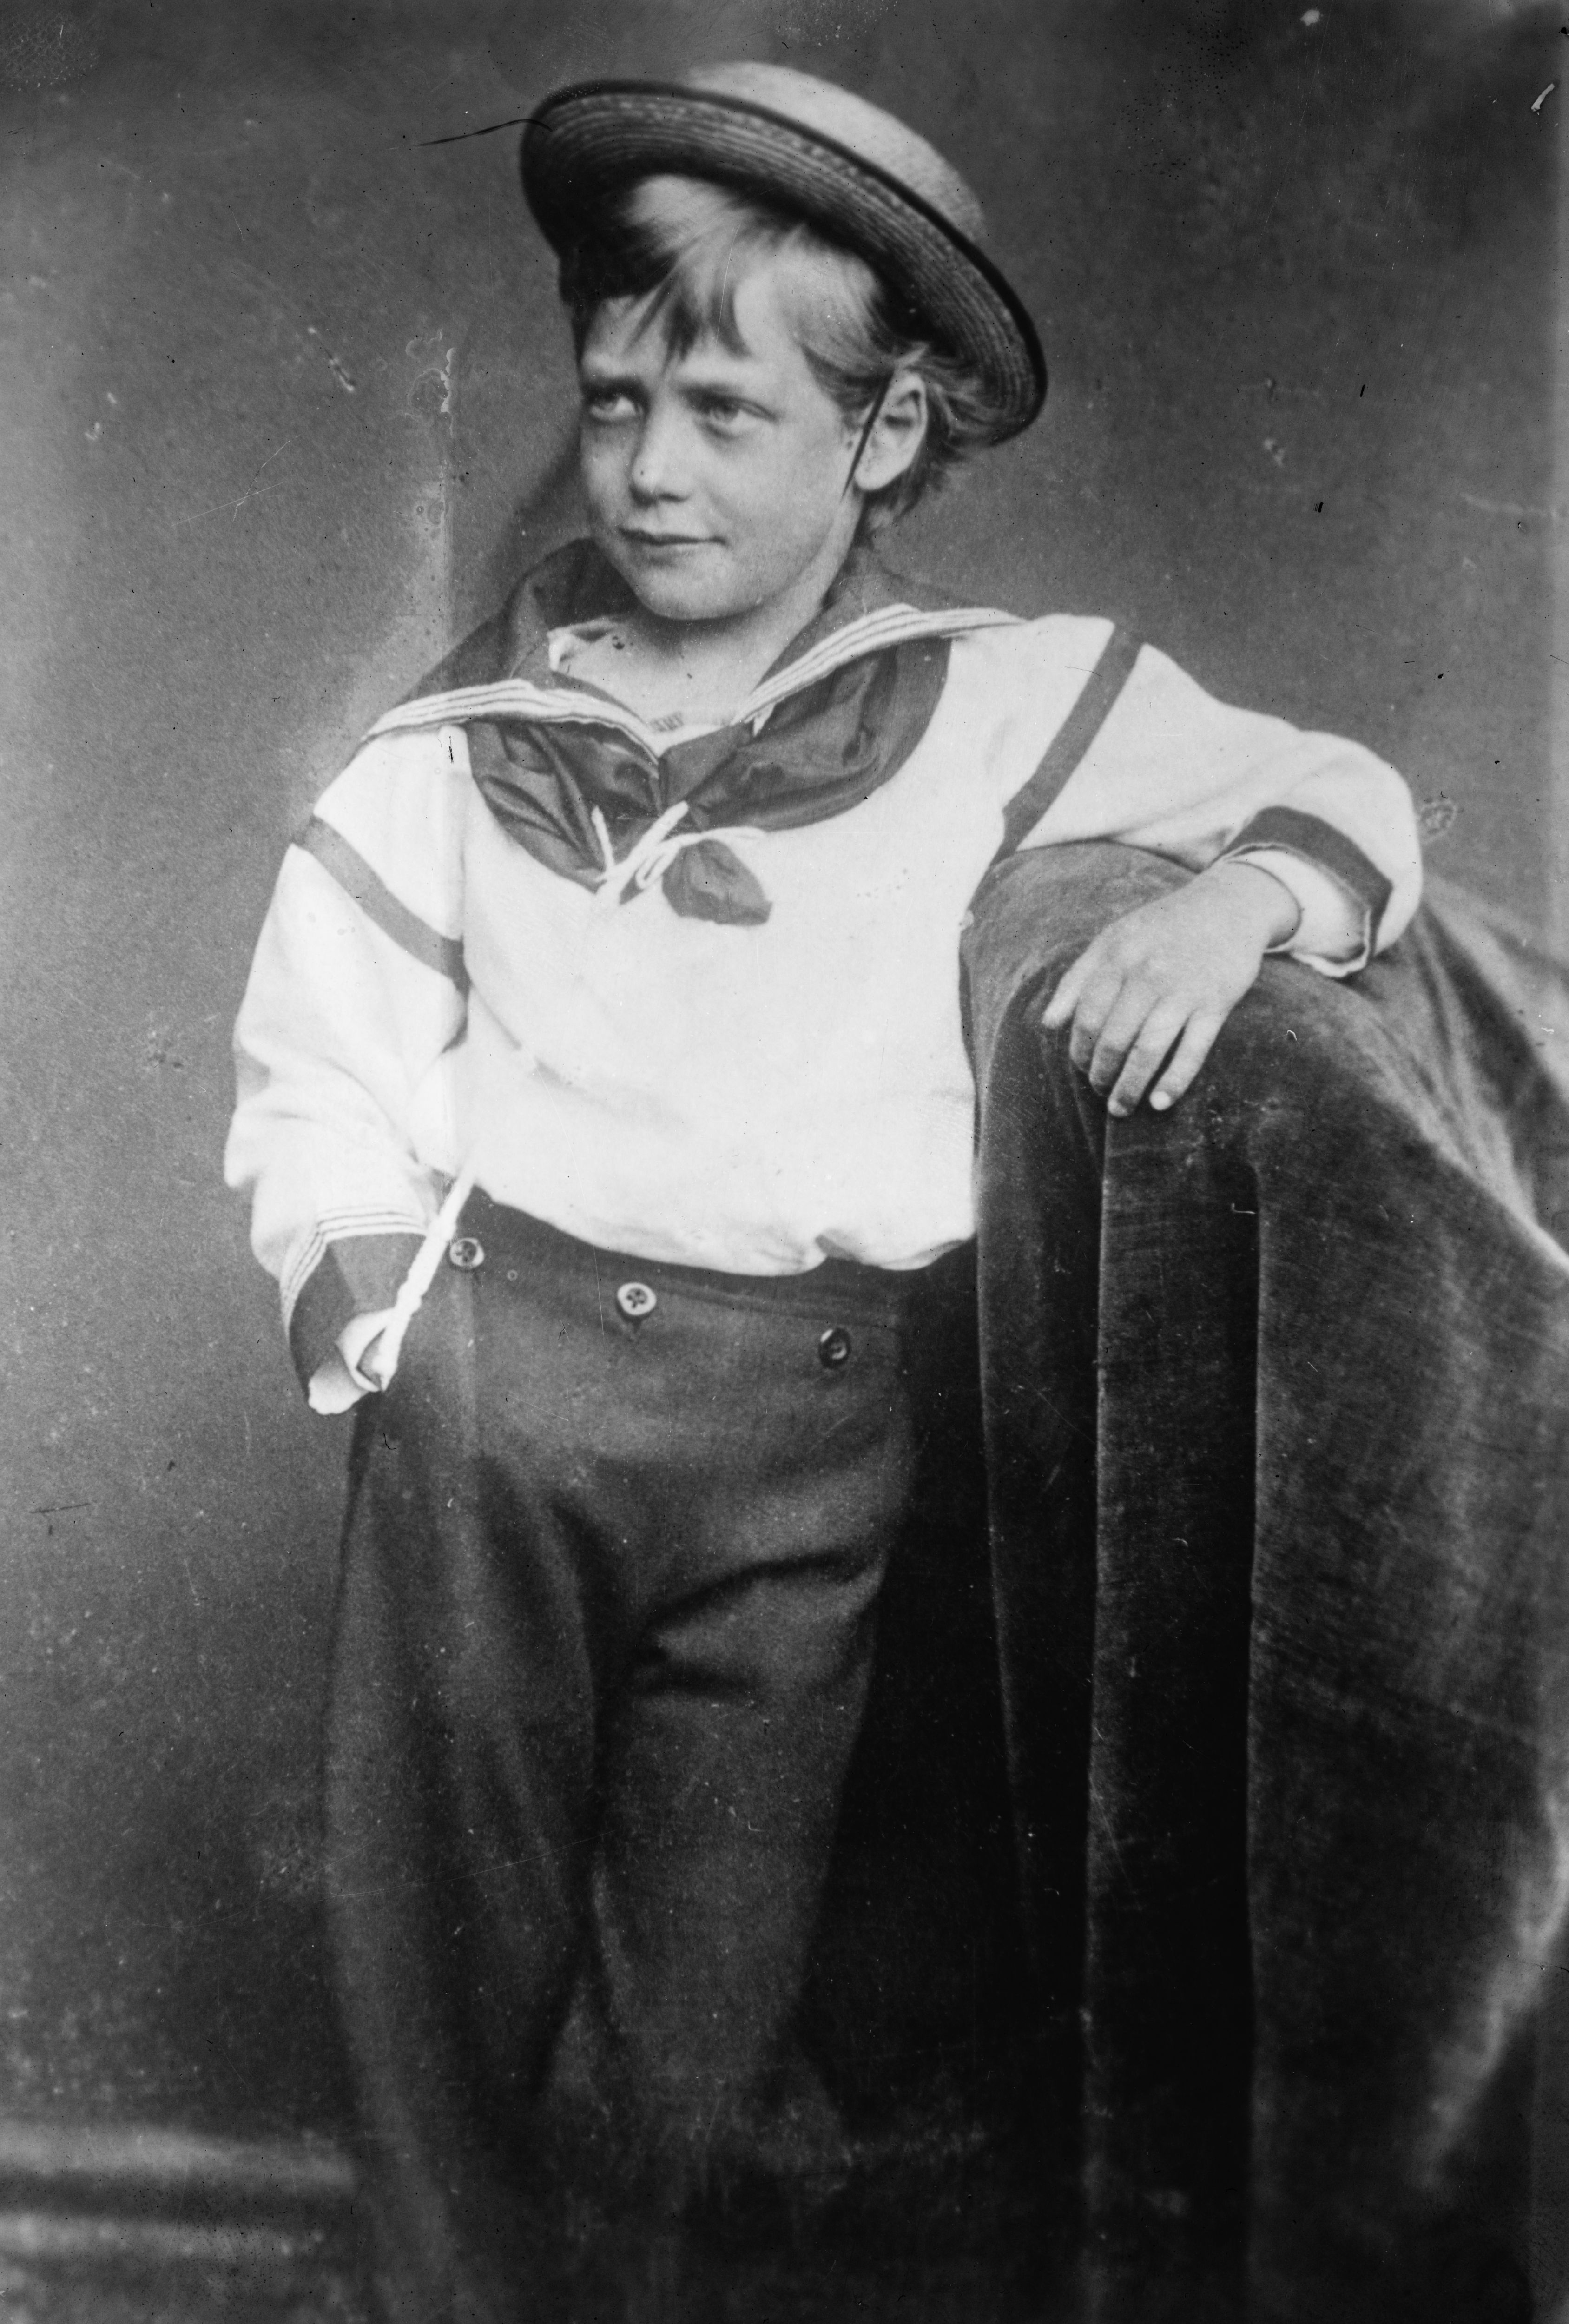 King George V of the United Kingdom as a young boy. Photograph taken 1870; published by Bain News Service 1911